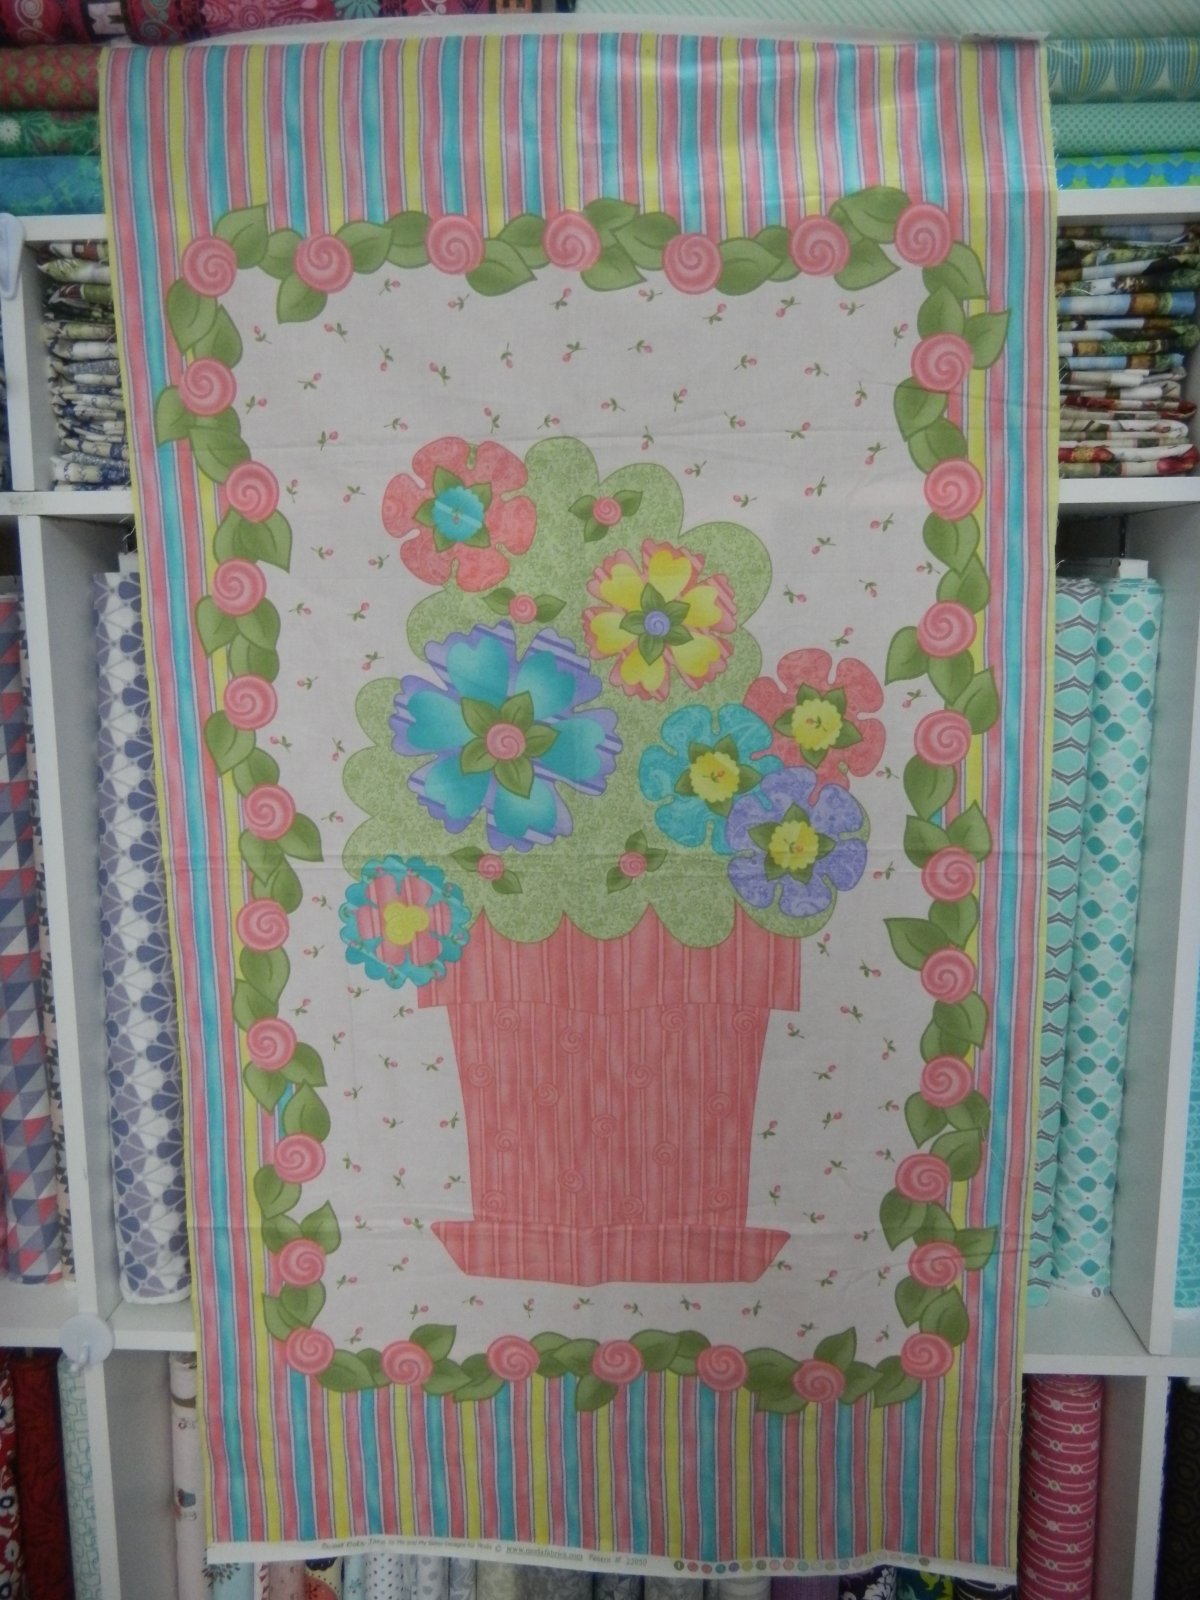 Panel#161 - Sweet Baby Jane - Floral